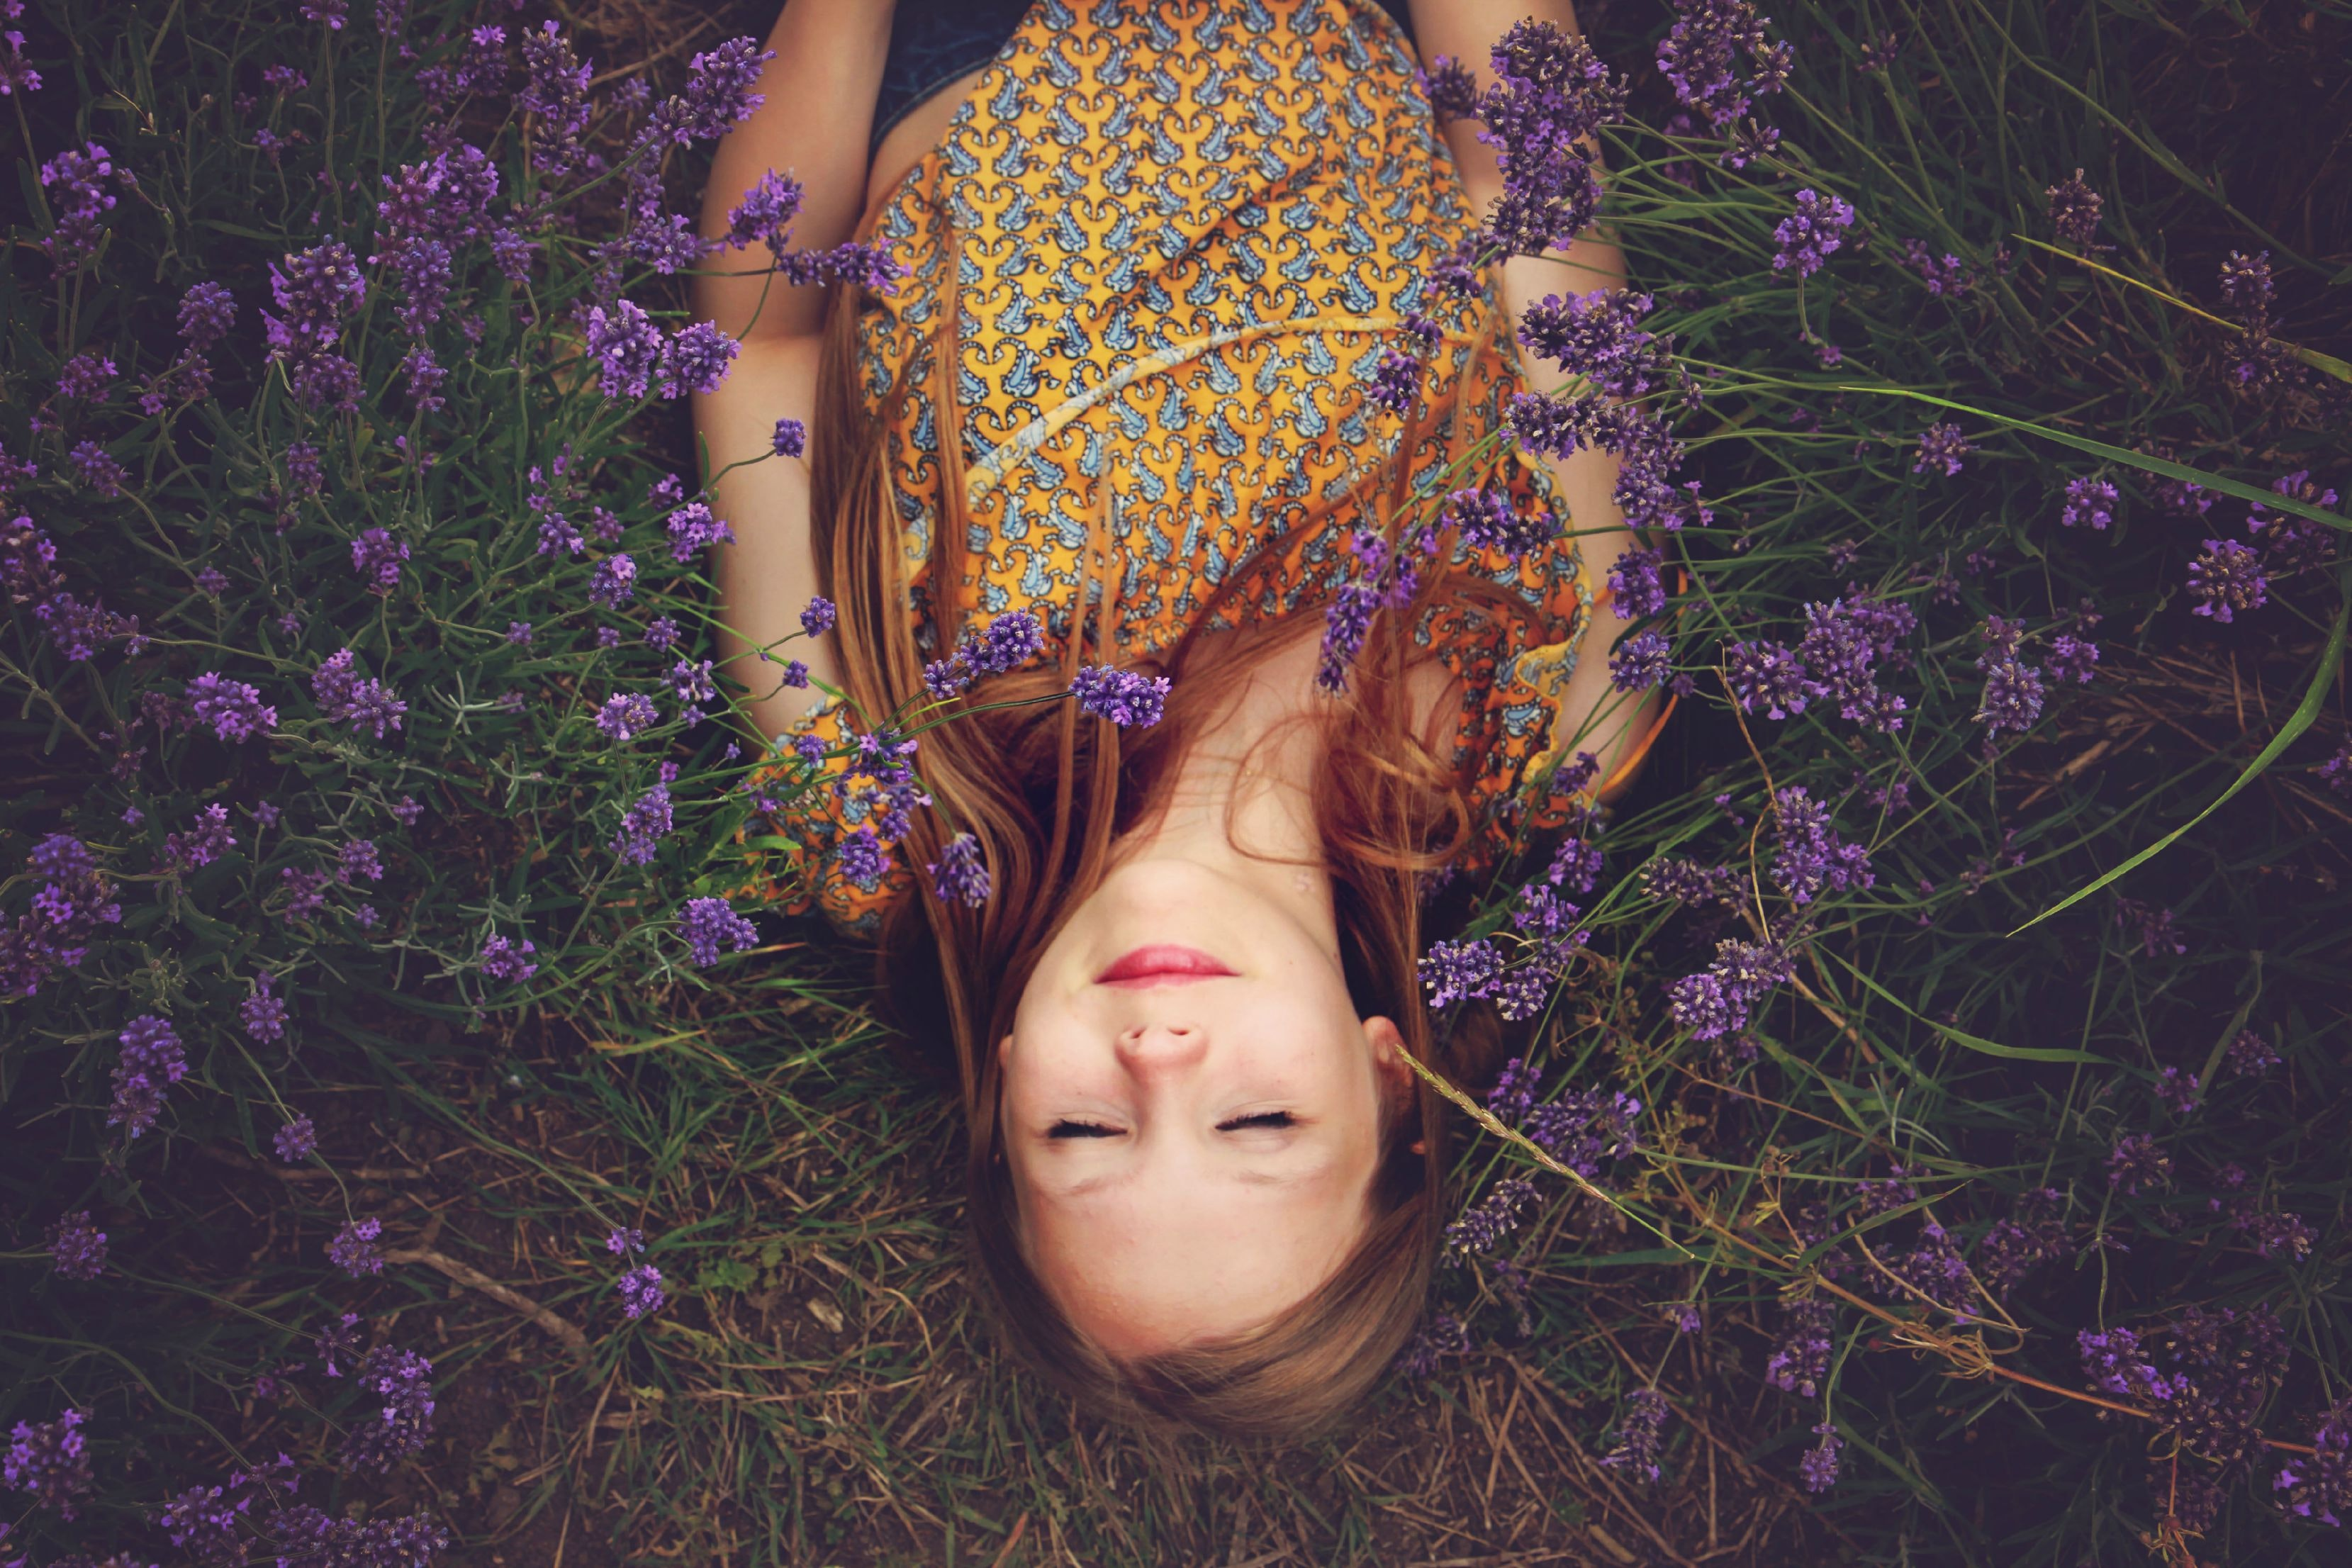 Photo of a light-skinned woman laying on the ground amidst lavender plants. Her face appears serene.